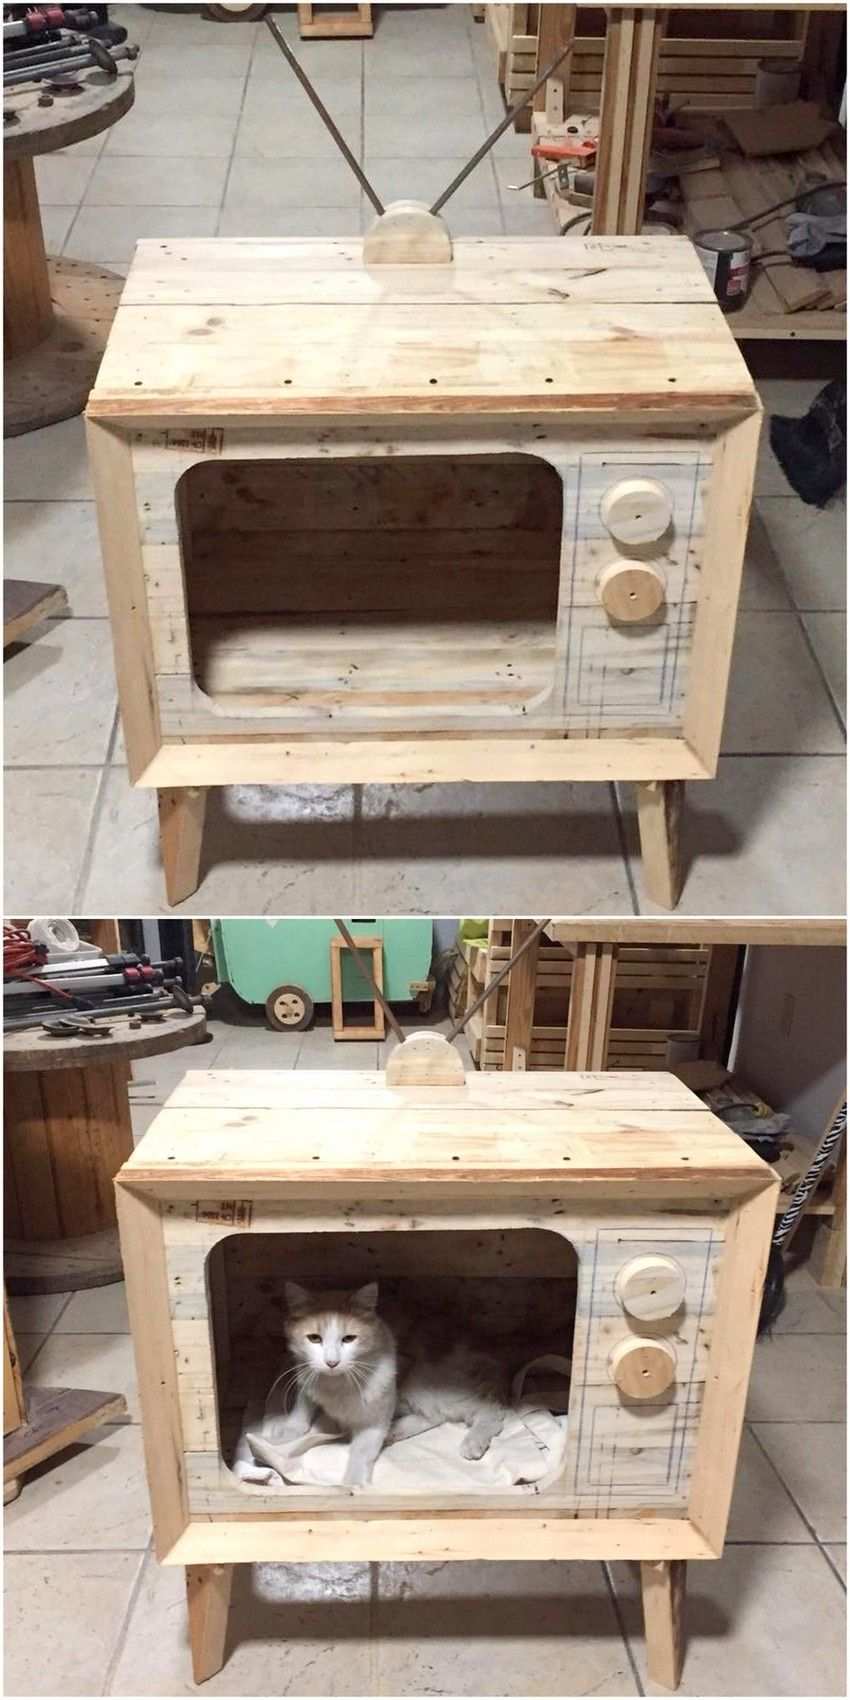 Repurposed wooden pallet diy ideas pallet recycled pinterest